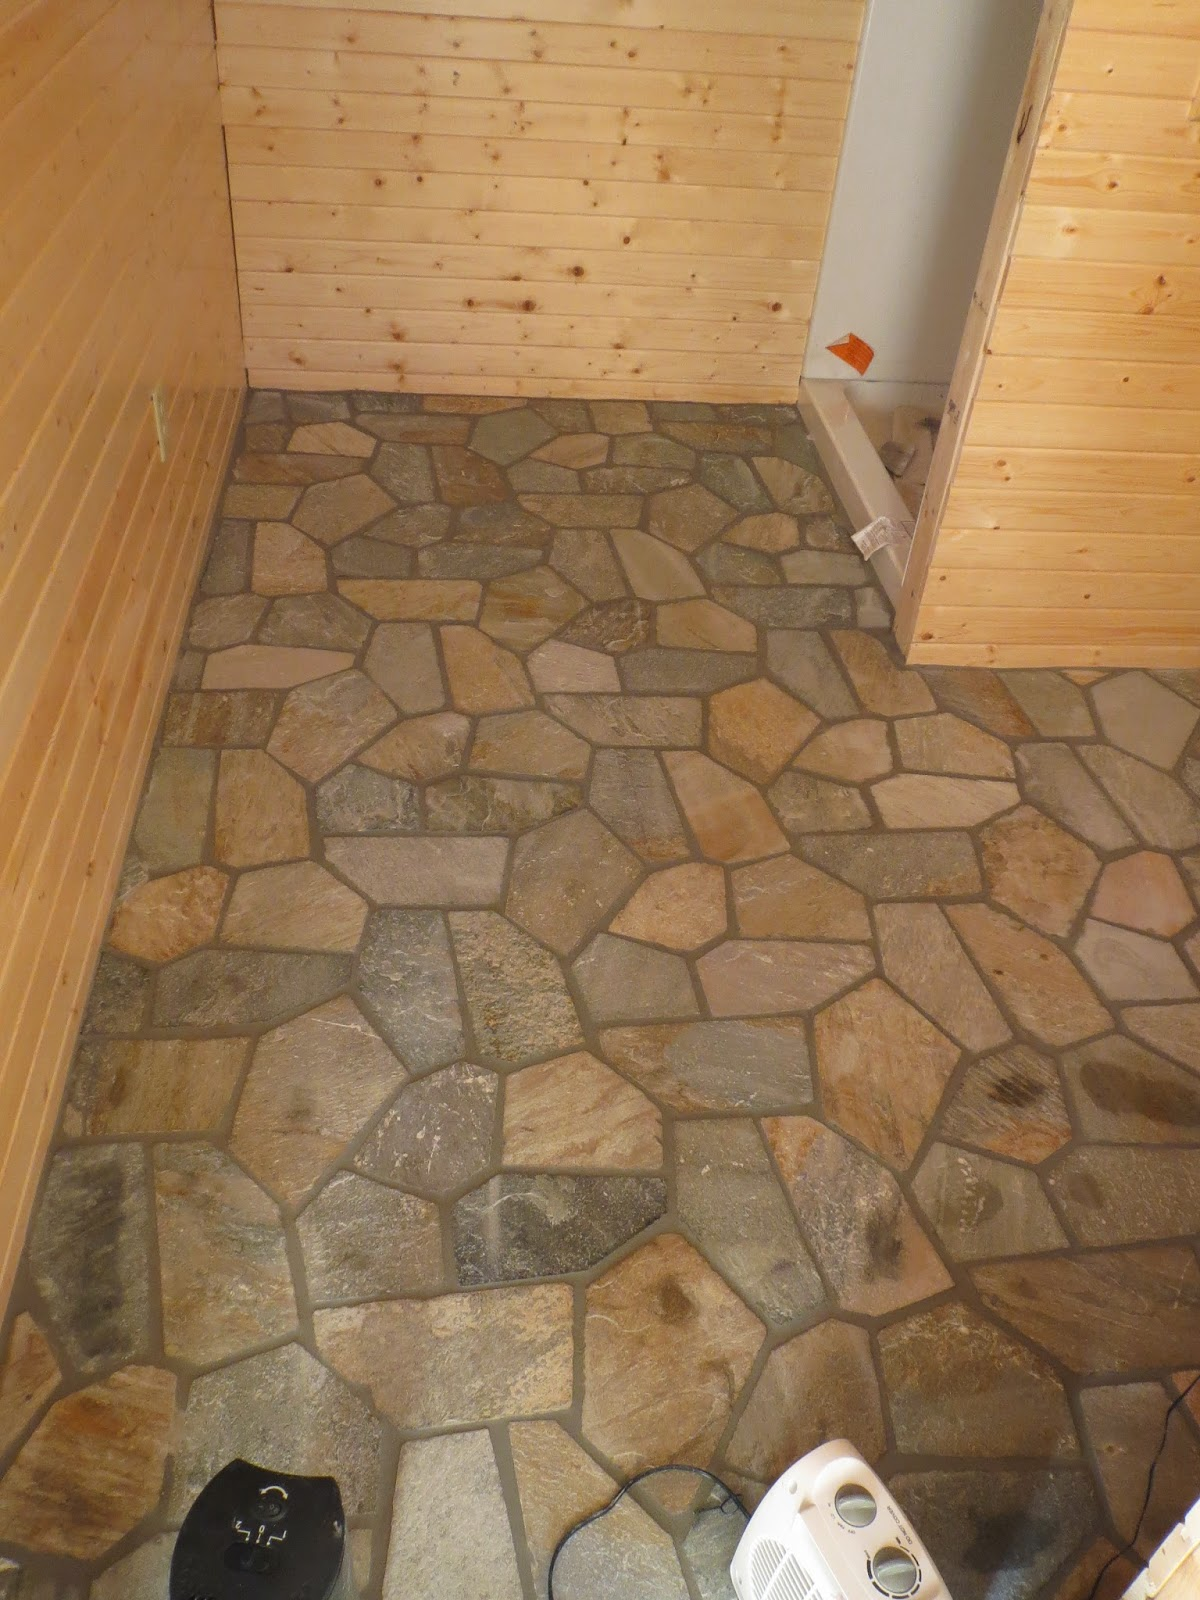 More pictures of the island cabin huisman concepts rock floor tile huismanconcepts ely minnesota custom lake cabin dailygadgetfo Image collections